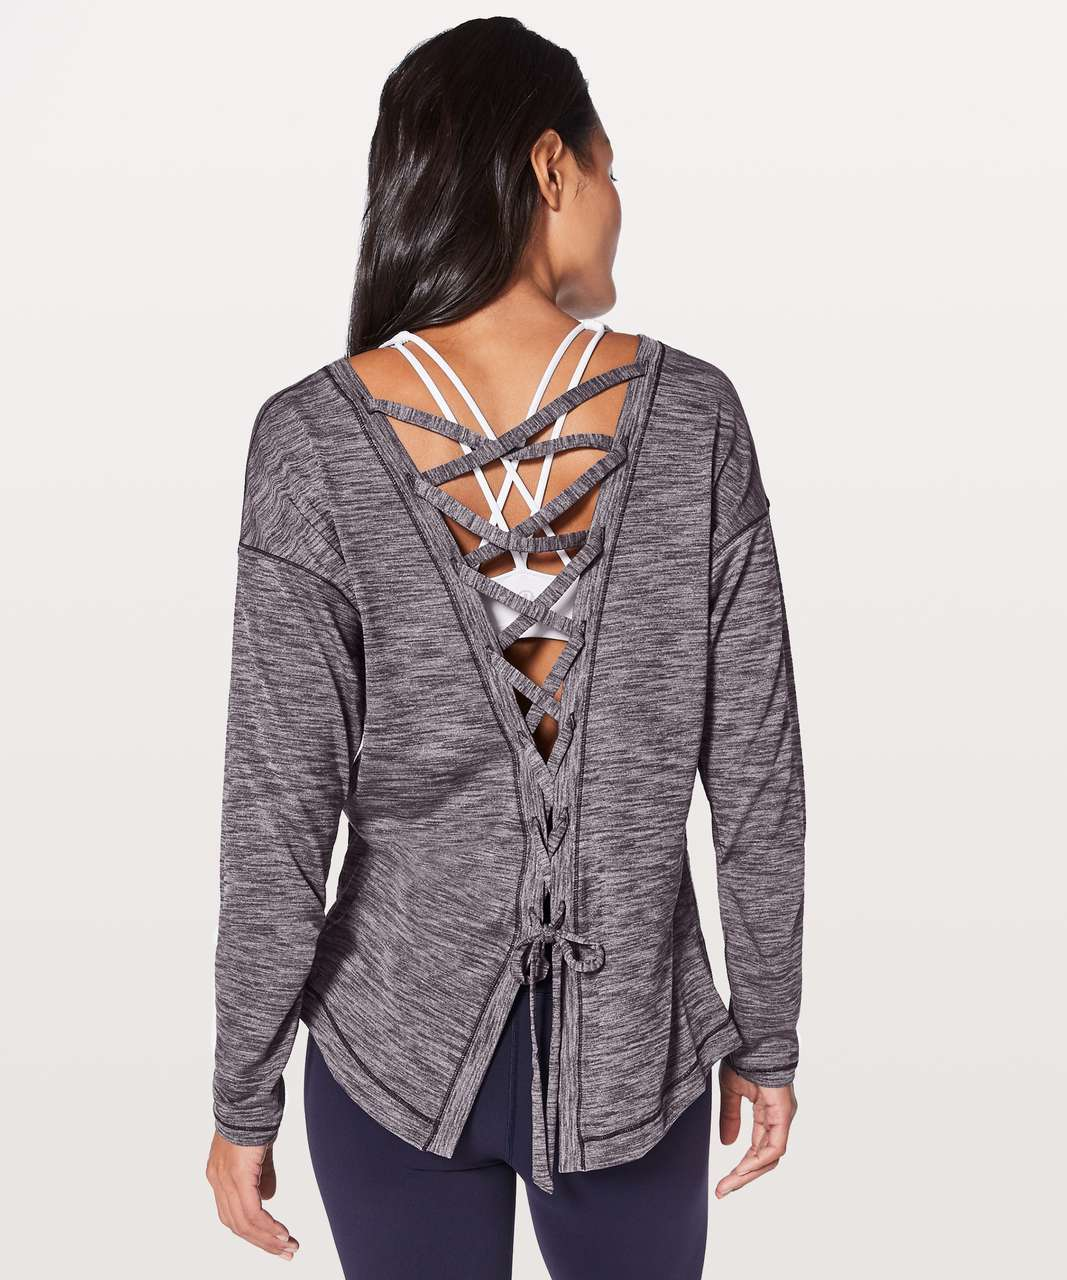 Lululemon Laced With Intent Long Sleeve - Heathered Black Grape